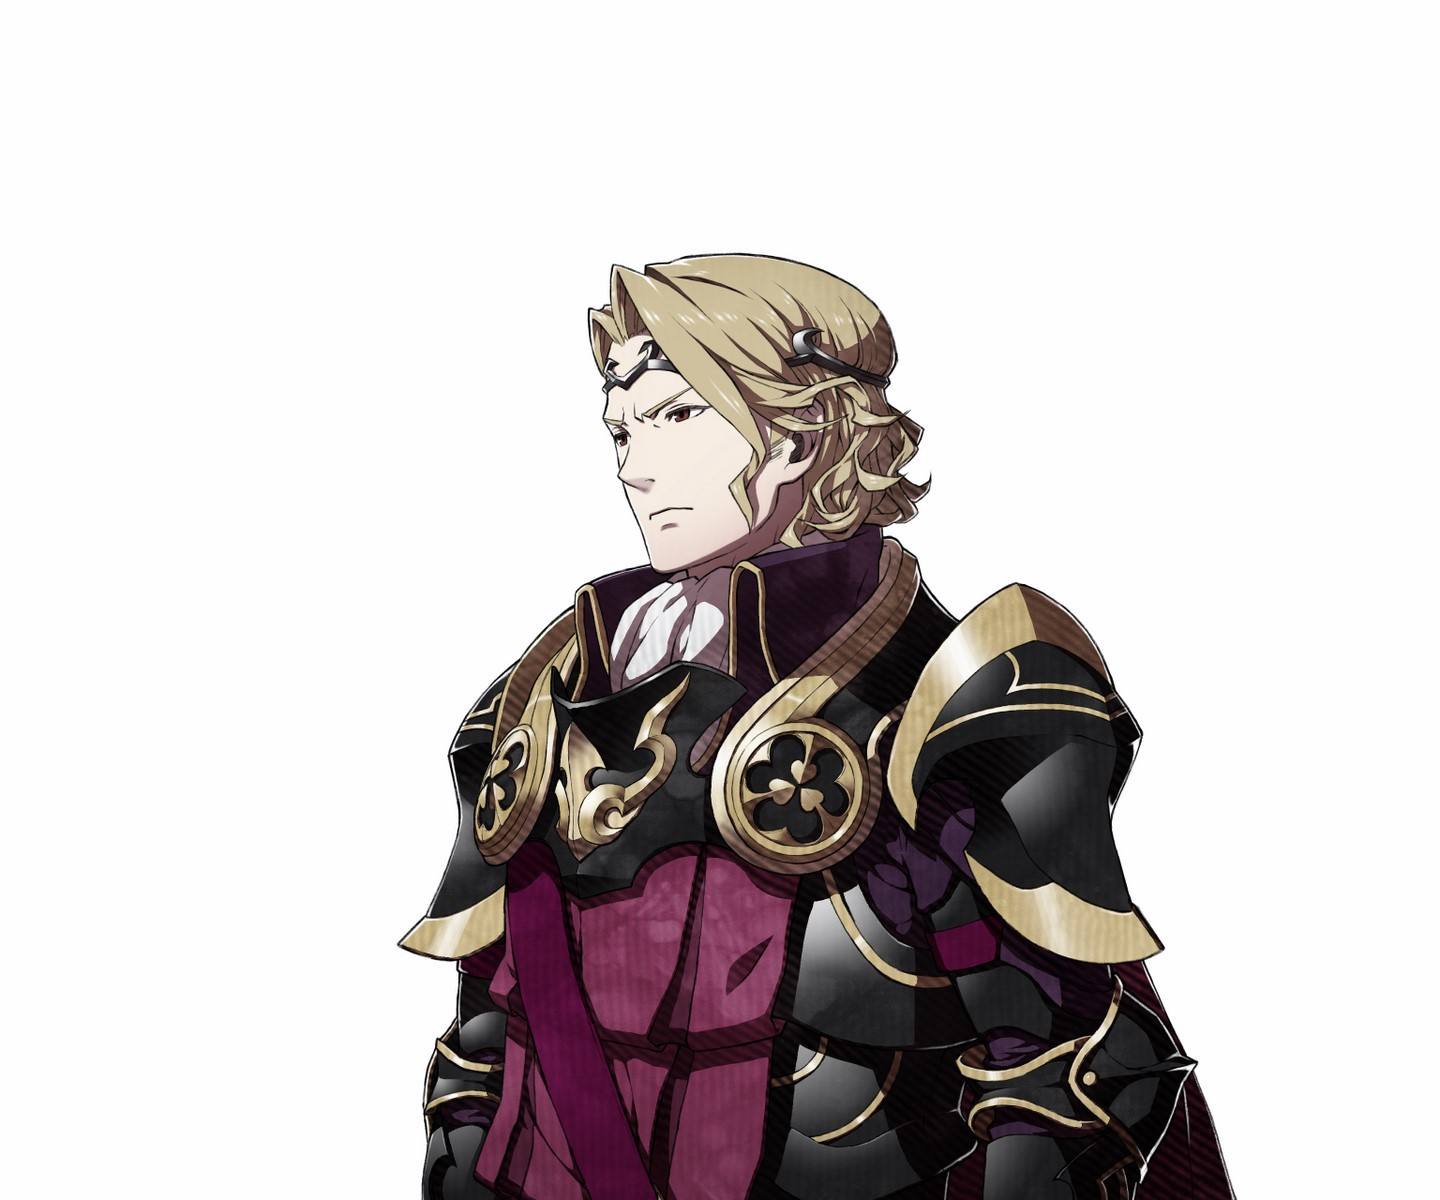 Pictures Of Fire Emblem Fates Changes New Features 4 25 Game Nintendo 3ds Conquest Usa Enlarge Picture